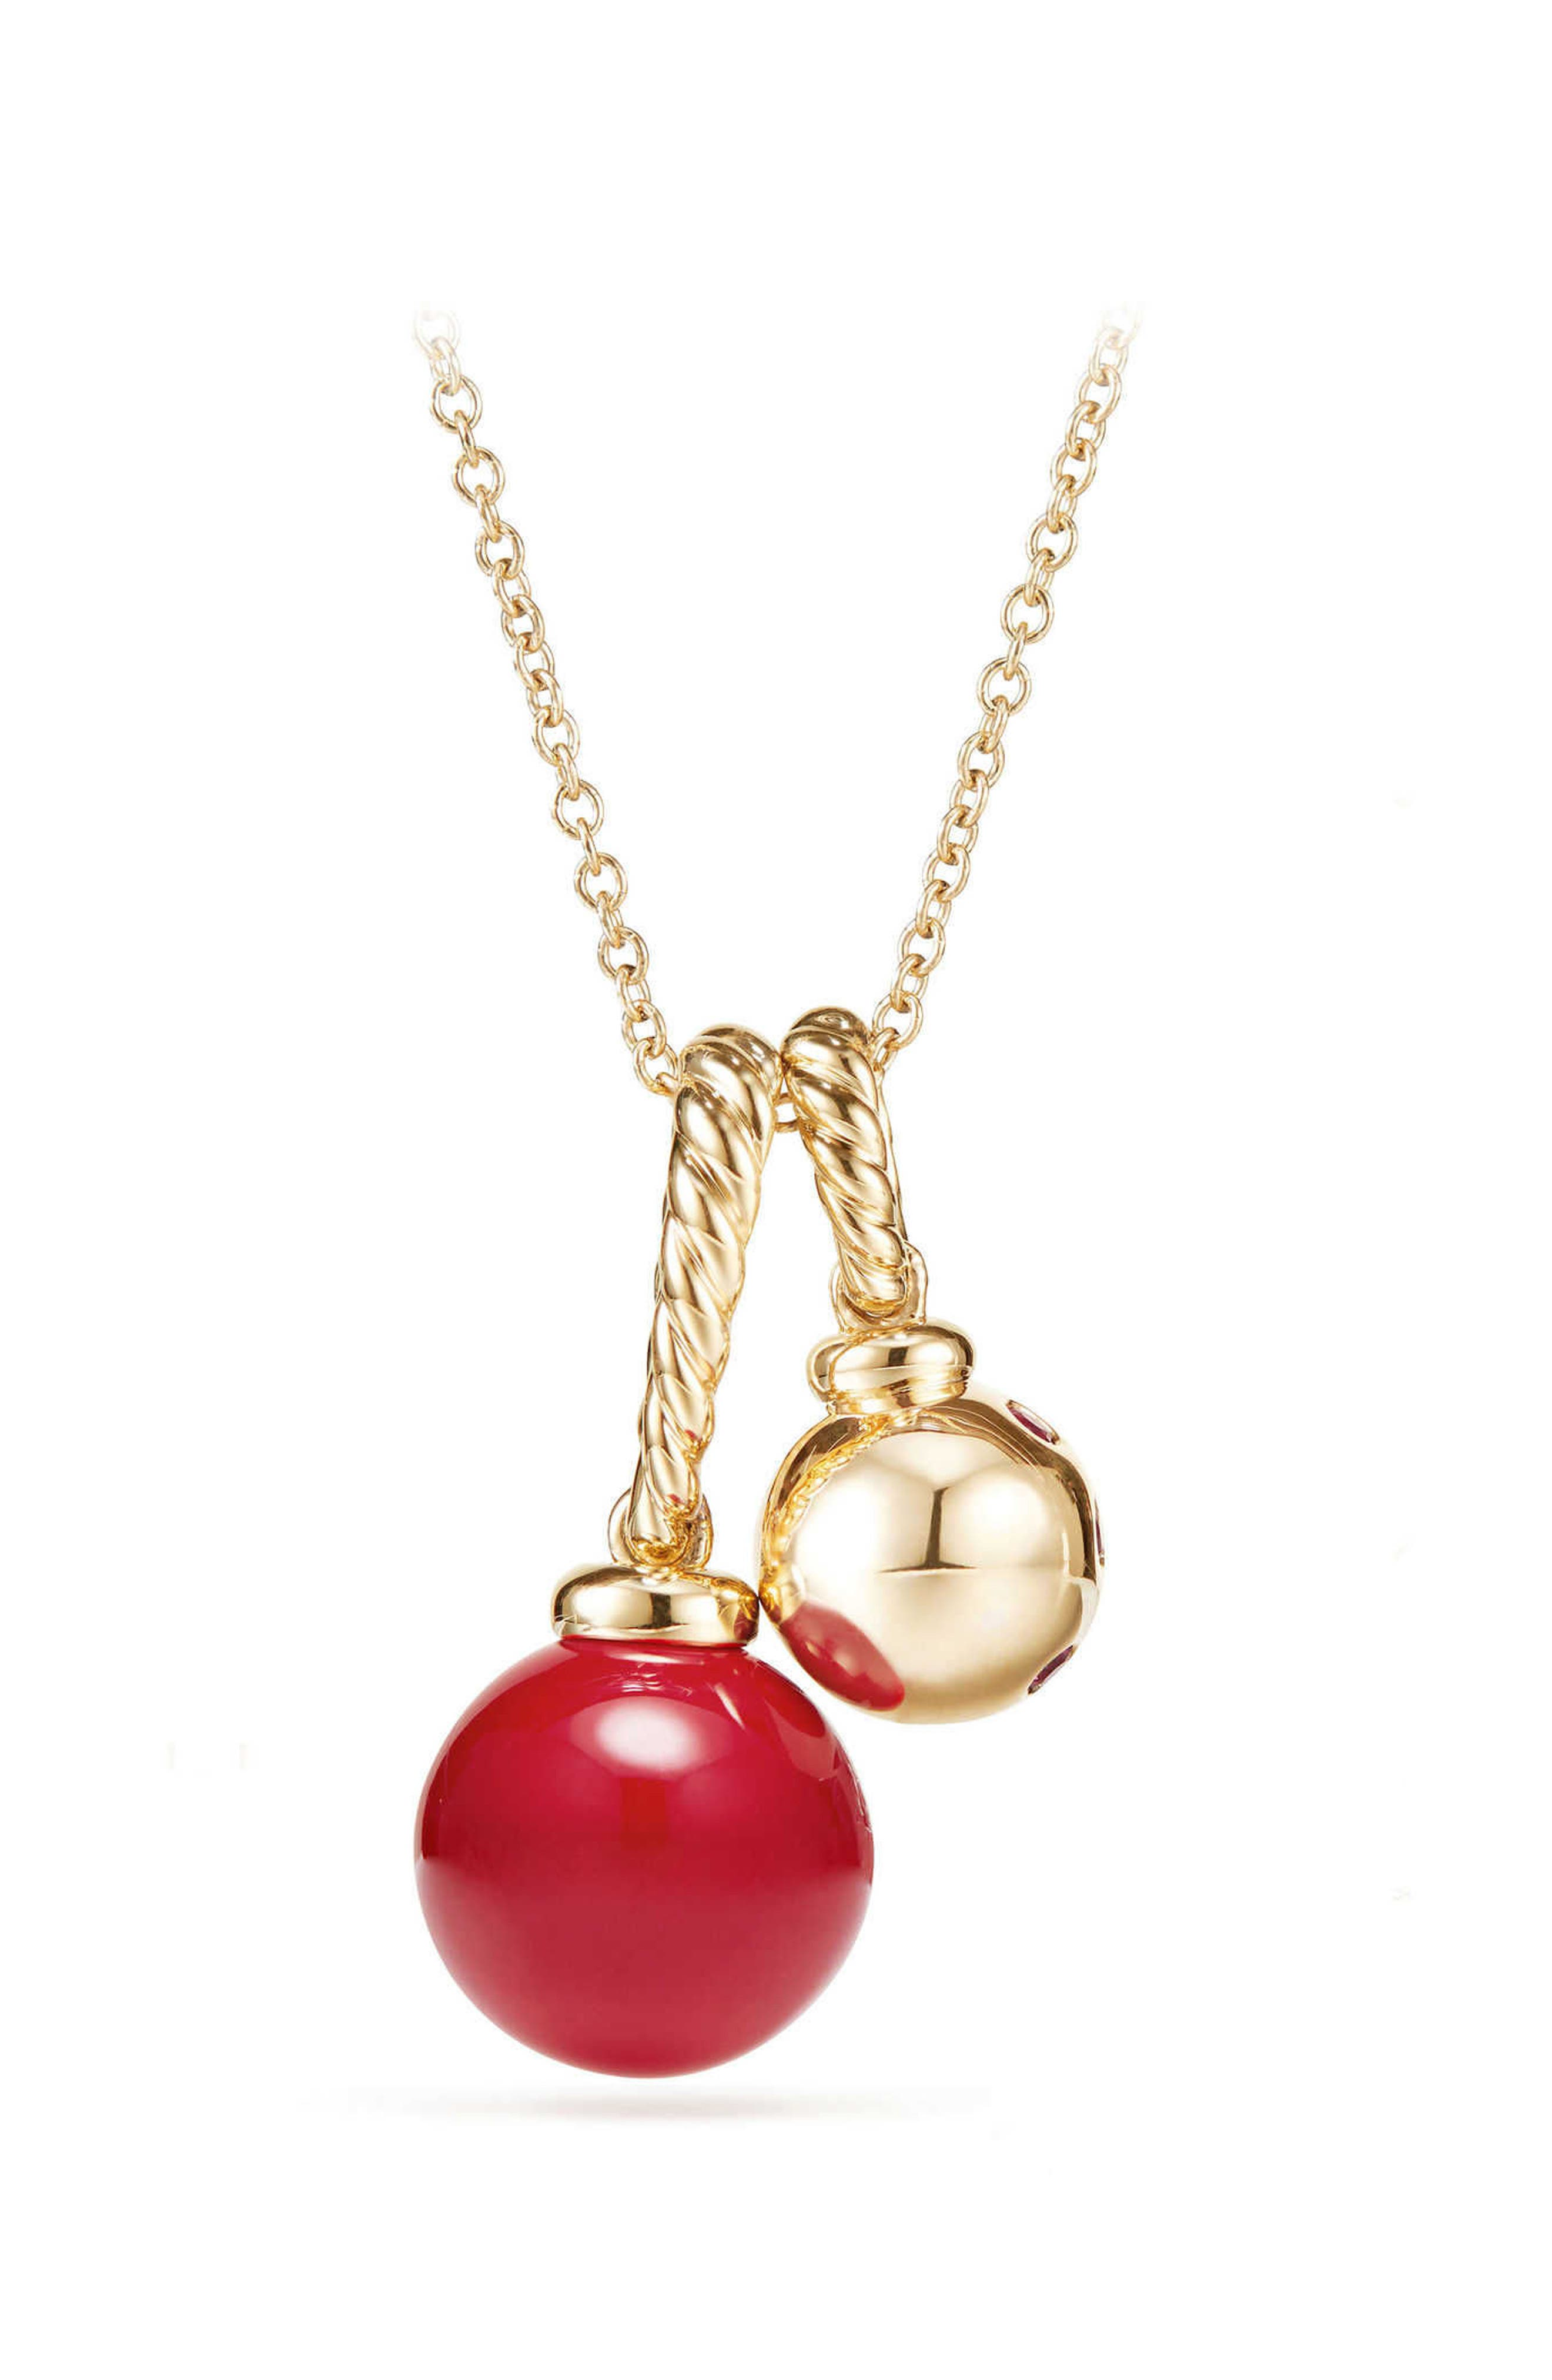 Solari Pendant Necklace in 18K Gold with Cherry Amber,                             Main thumbnail 1, color,                             YELLOW GOLD/ RED